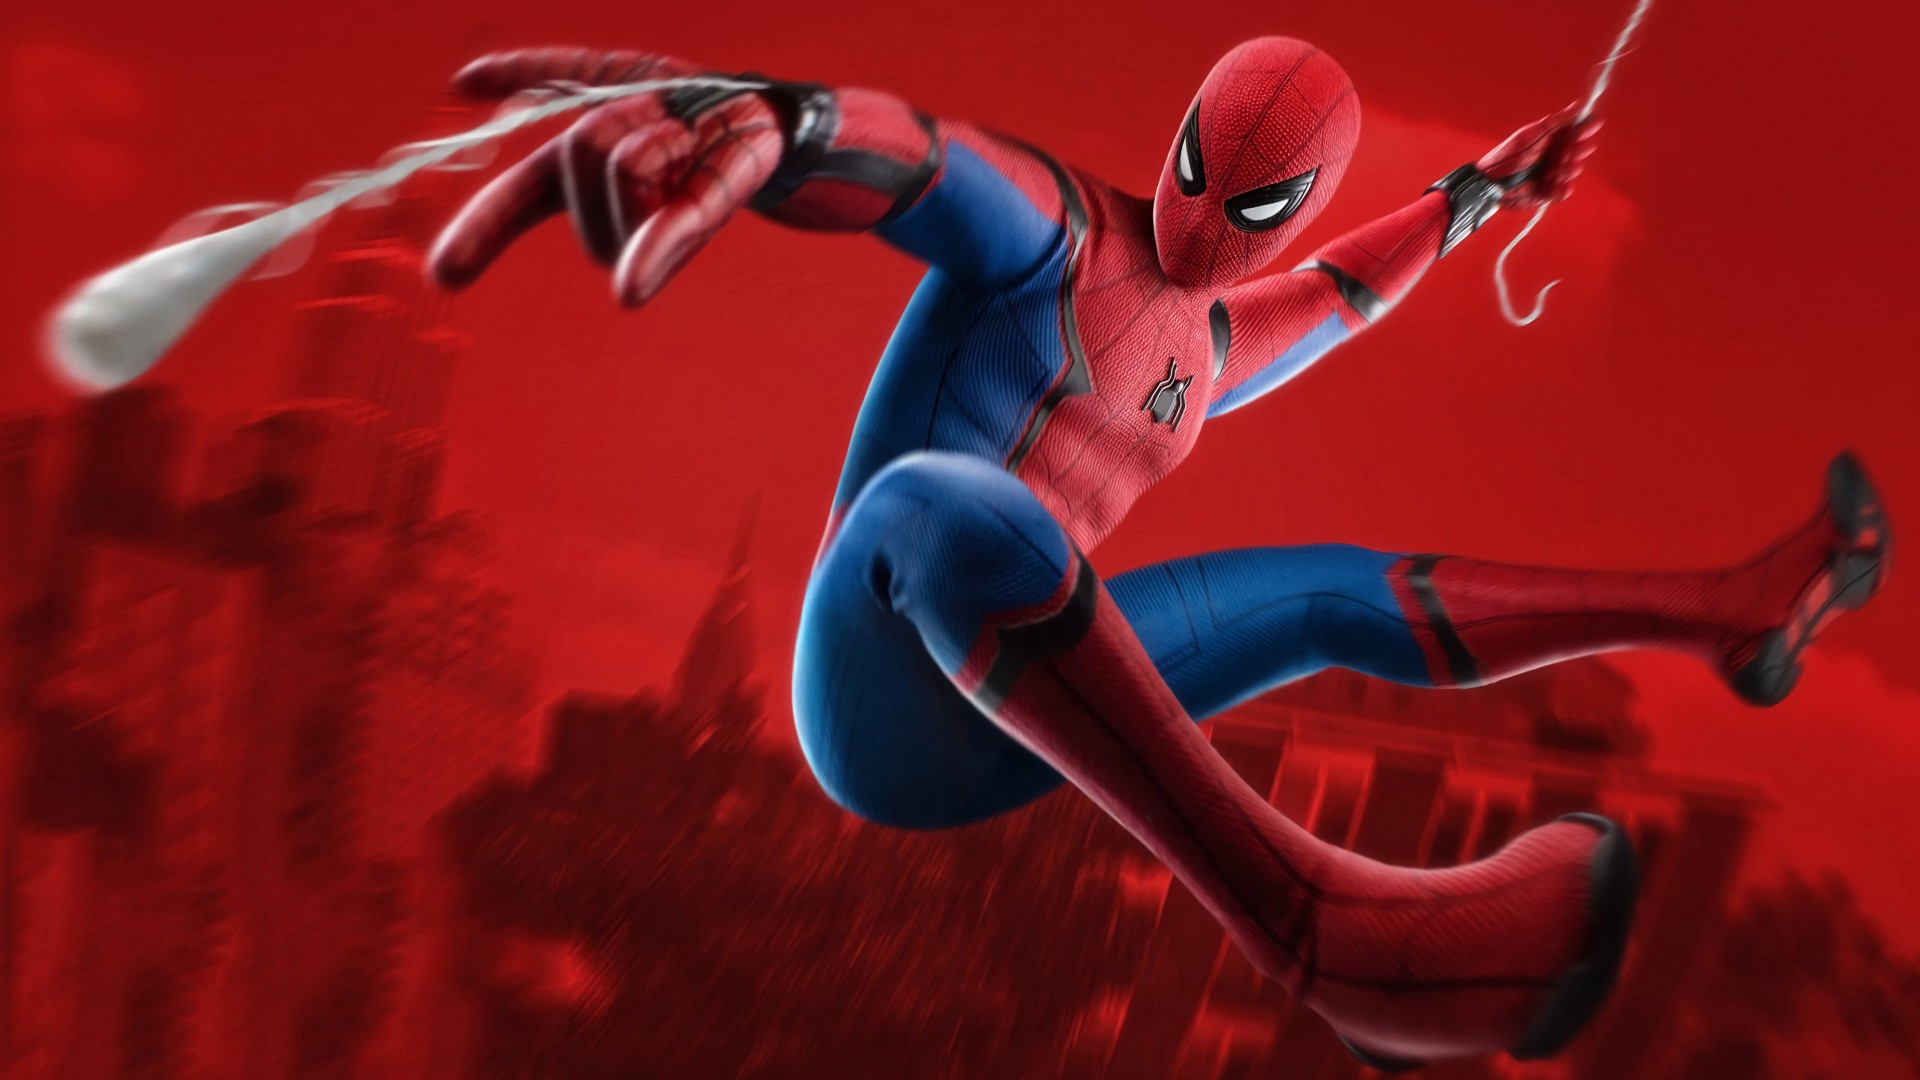 120 Stunning Spiderman Wallpapers To Choose From Clear Wallpaper